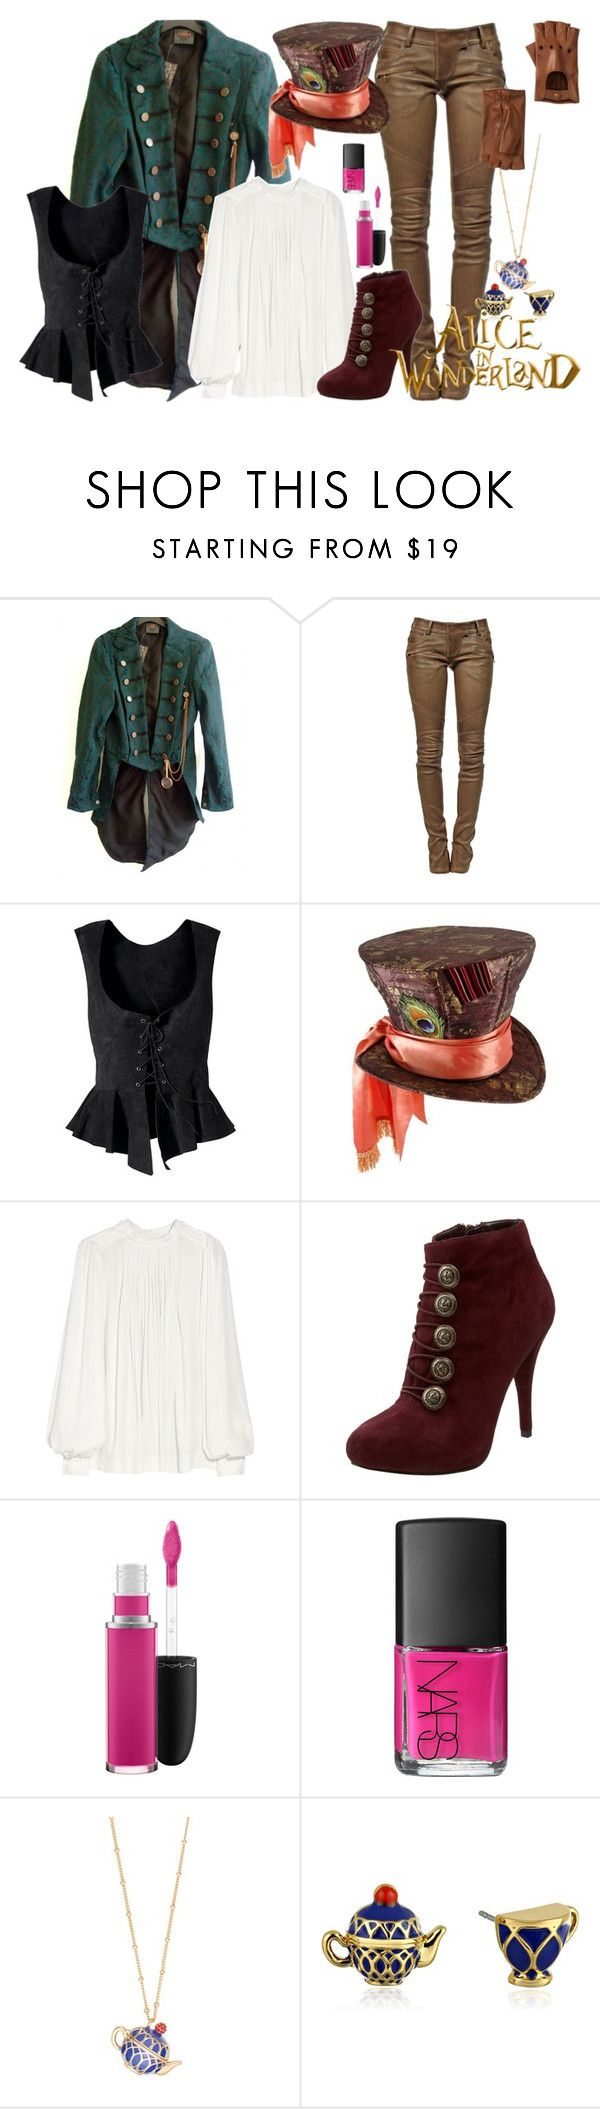 """Mad hatter"" by fashion-nova ❤ liked on Polyvore featuring Balmain, Chloé, GUESS, MAC Cosmetics, NARS Cosmetics, Kate Spade and Portolano"